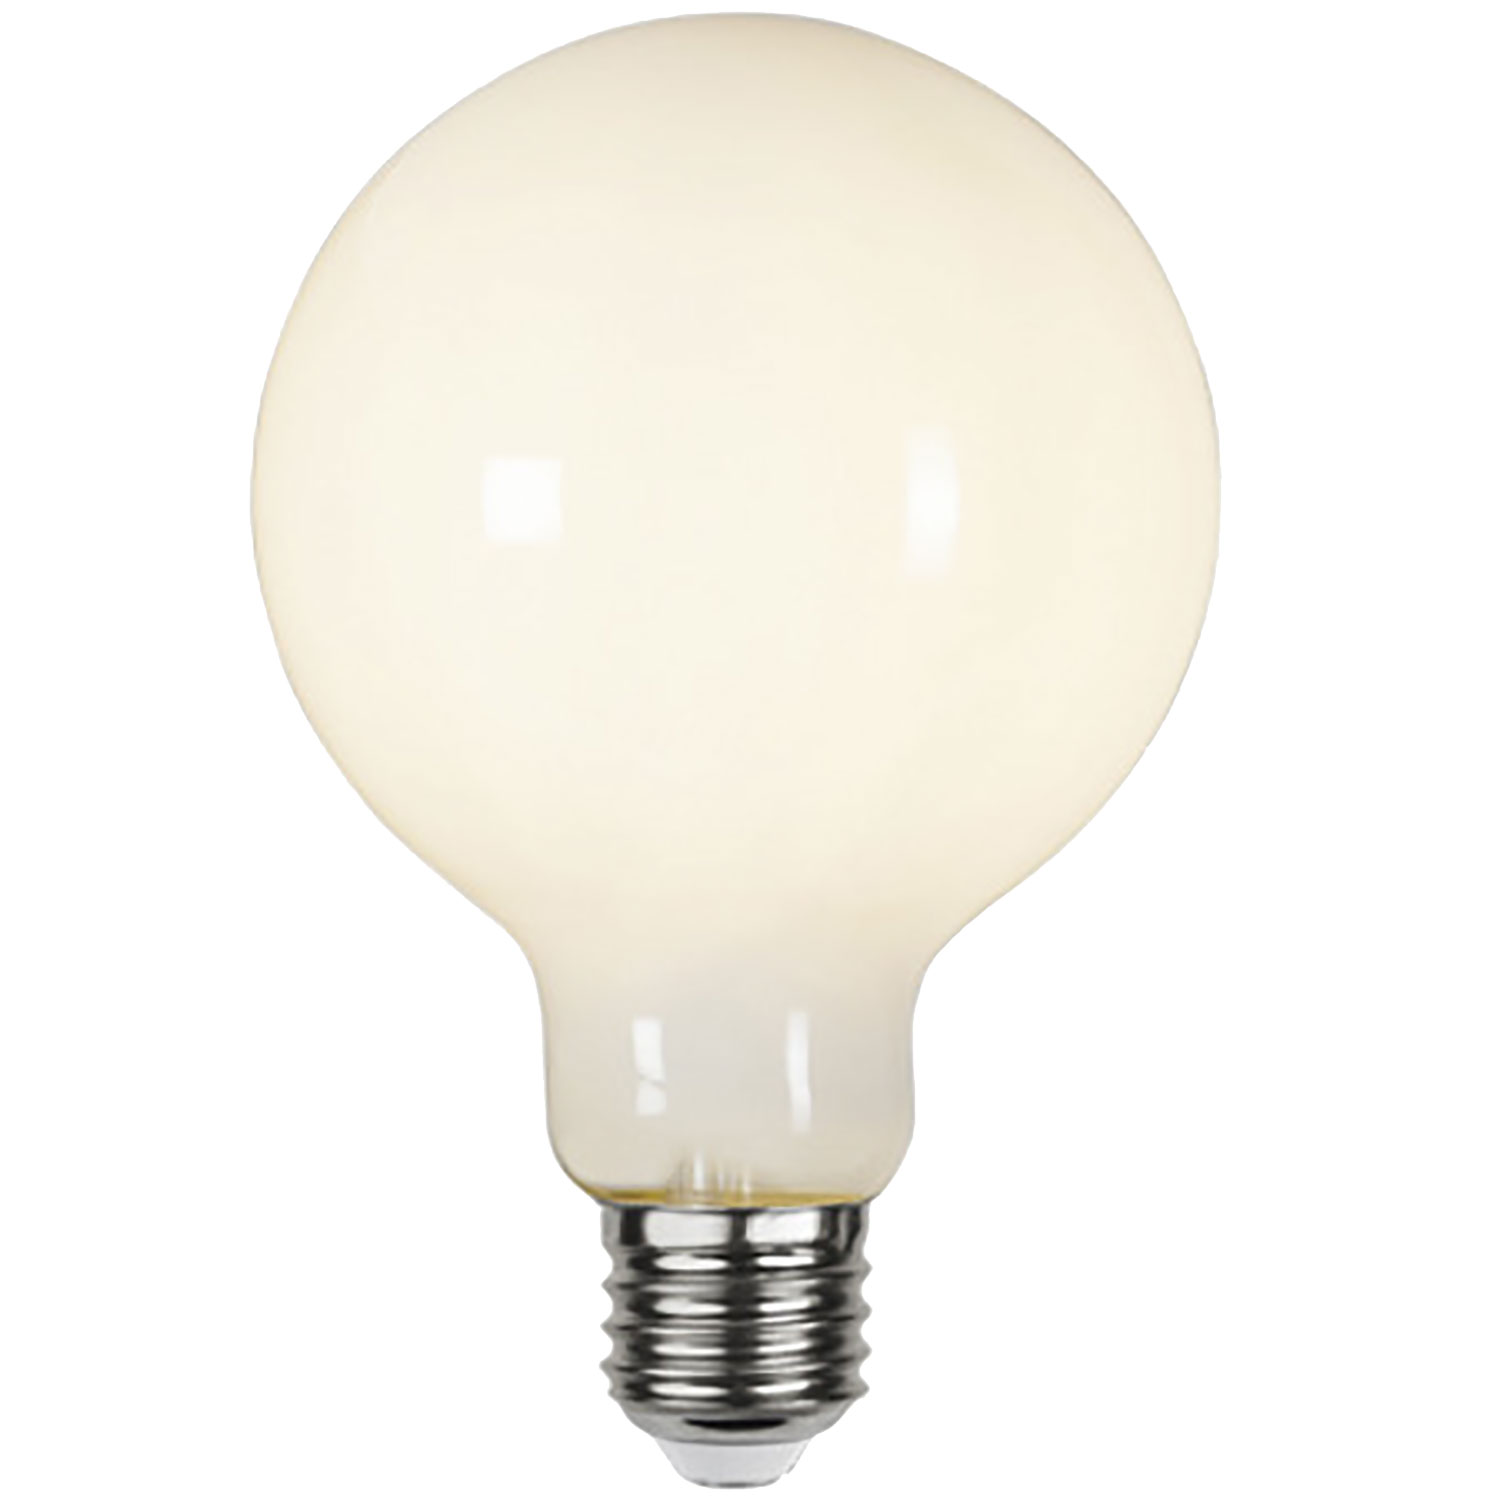 LED-lampa E27 G95 opaque, opal